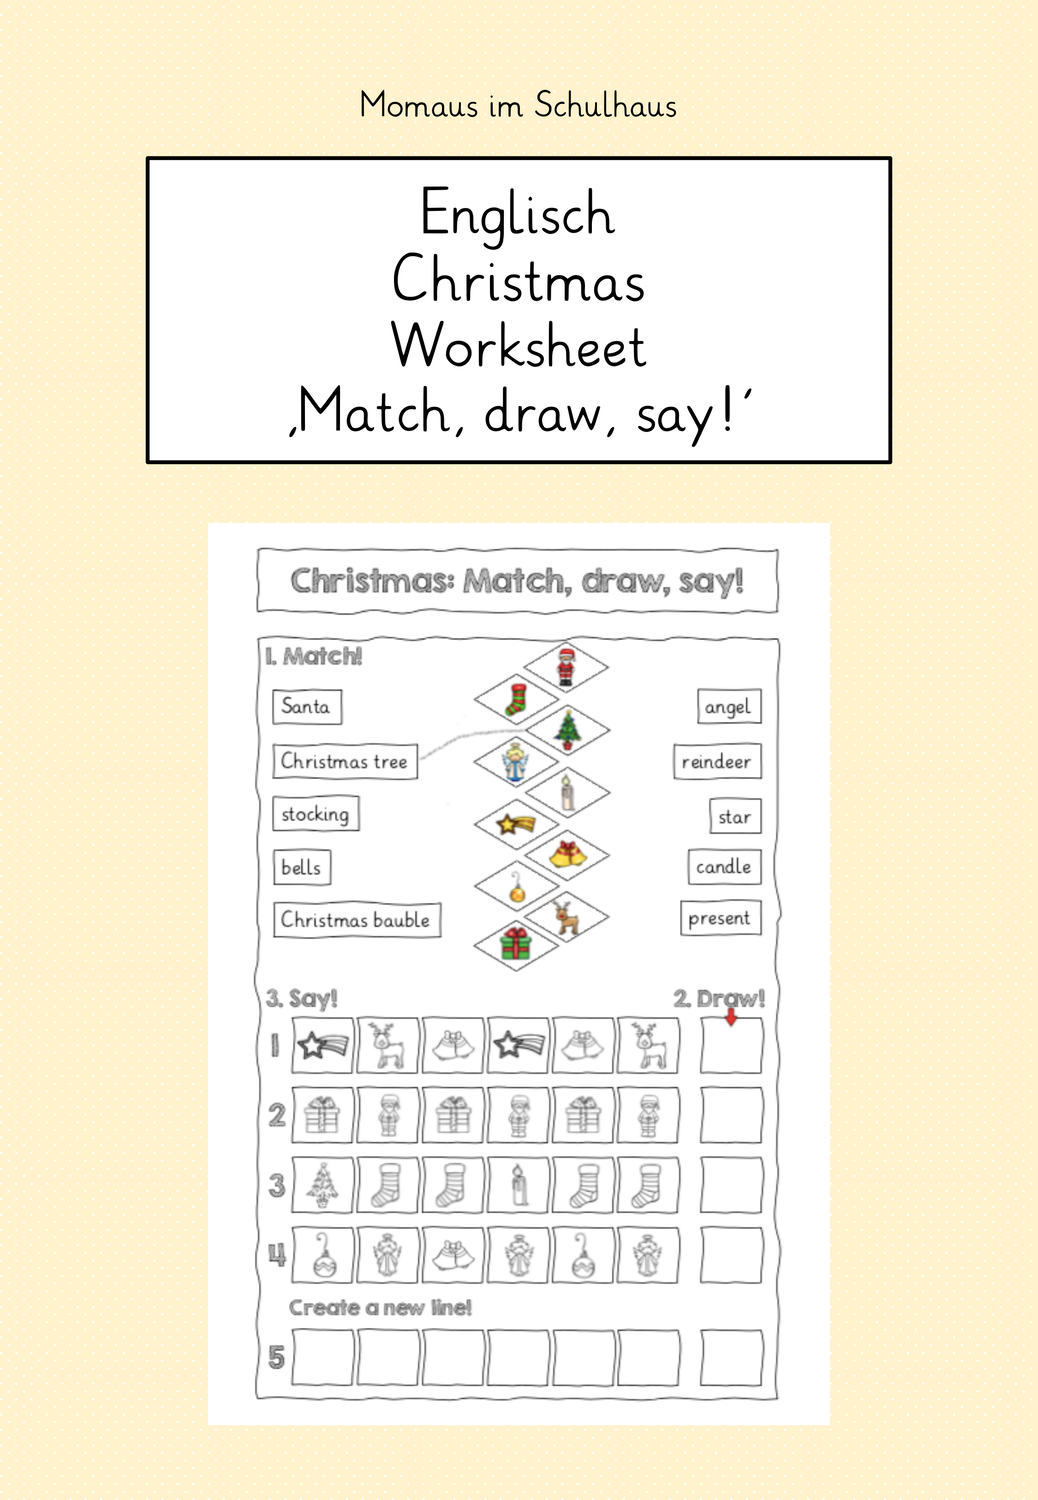 Christmas Worksheet Match Draw Say